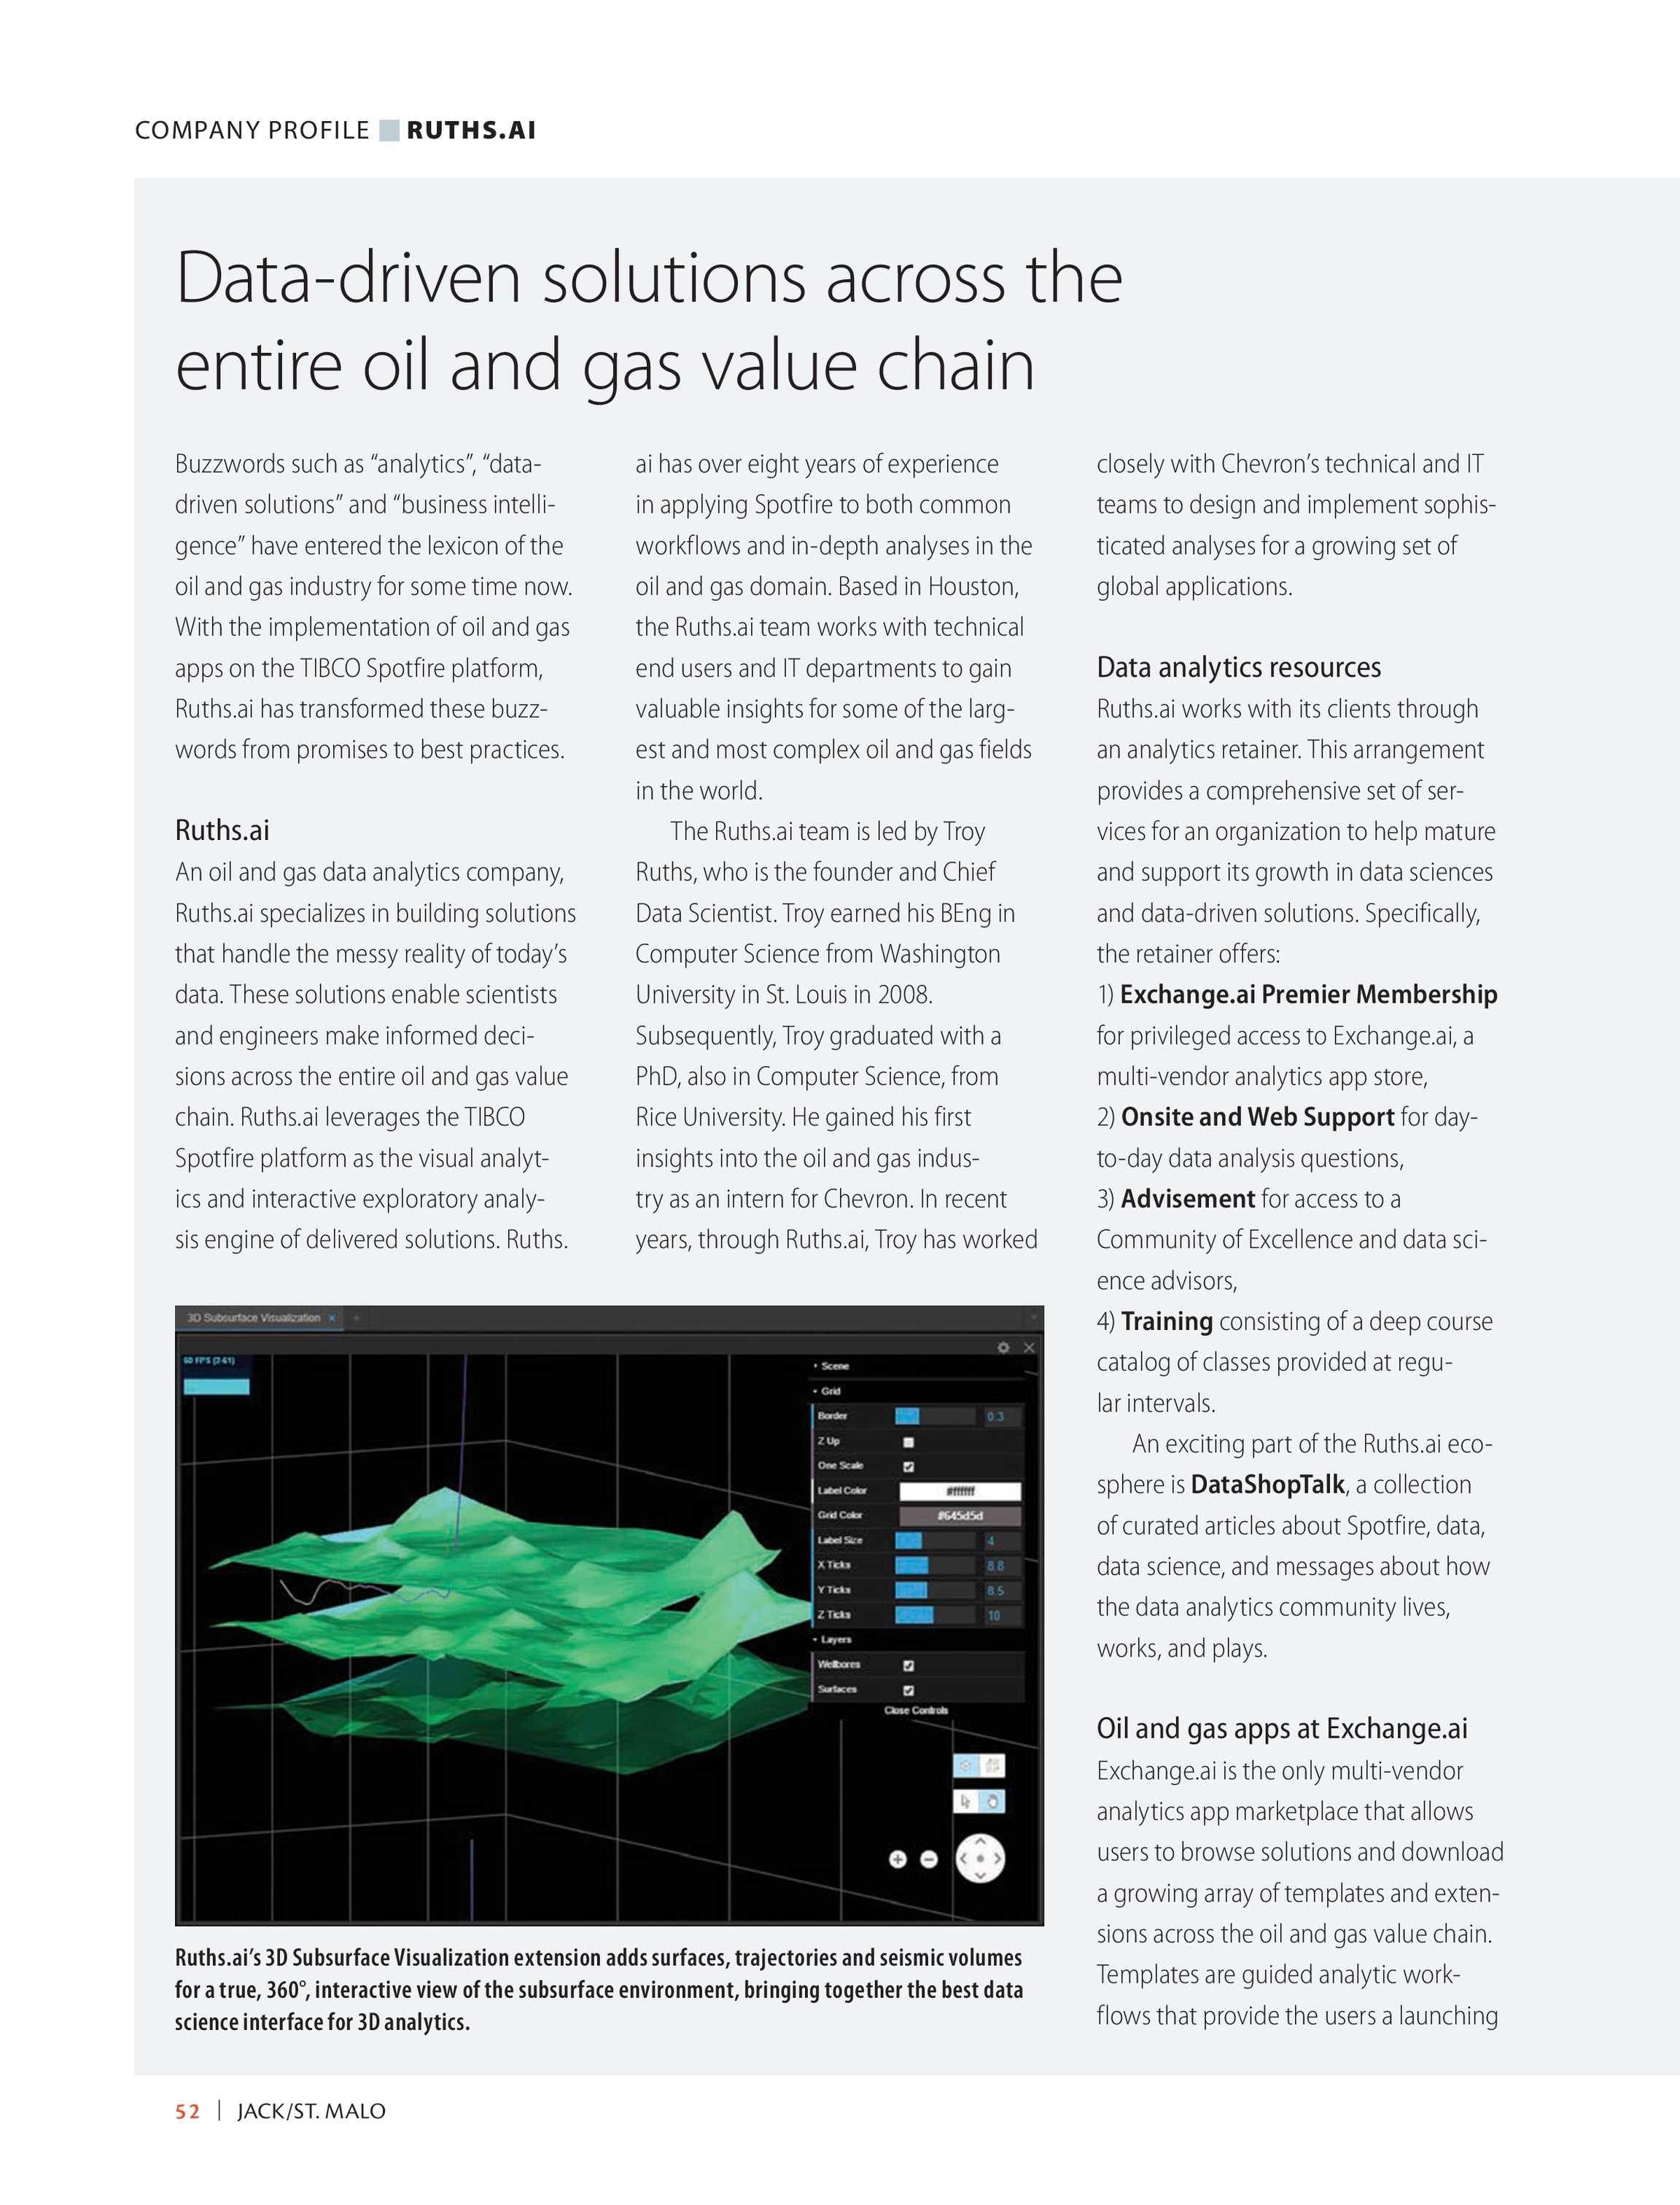 Oil & Gas Journal - August 1, 2016 - page S52